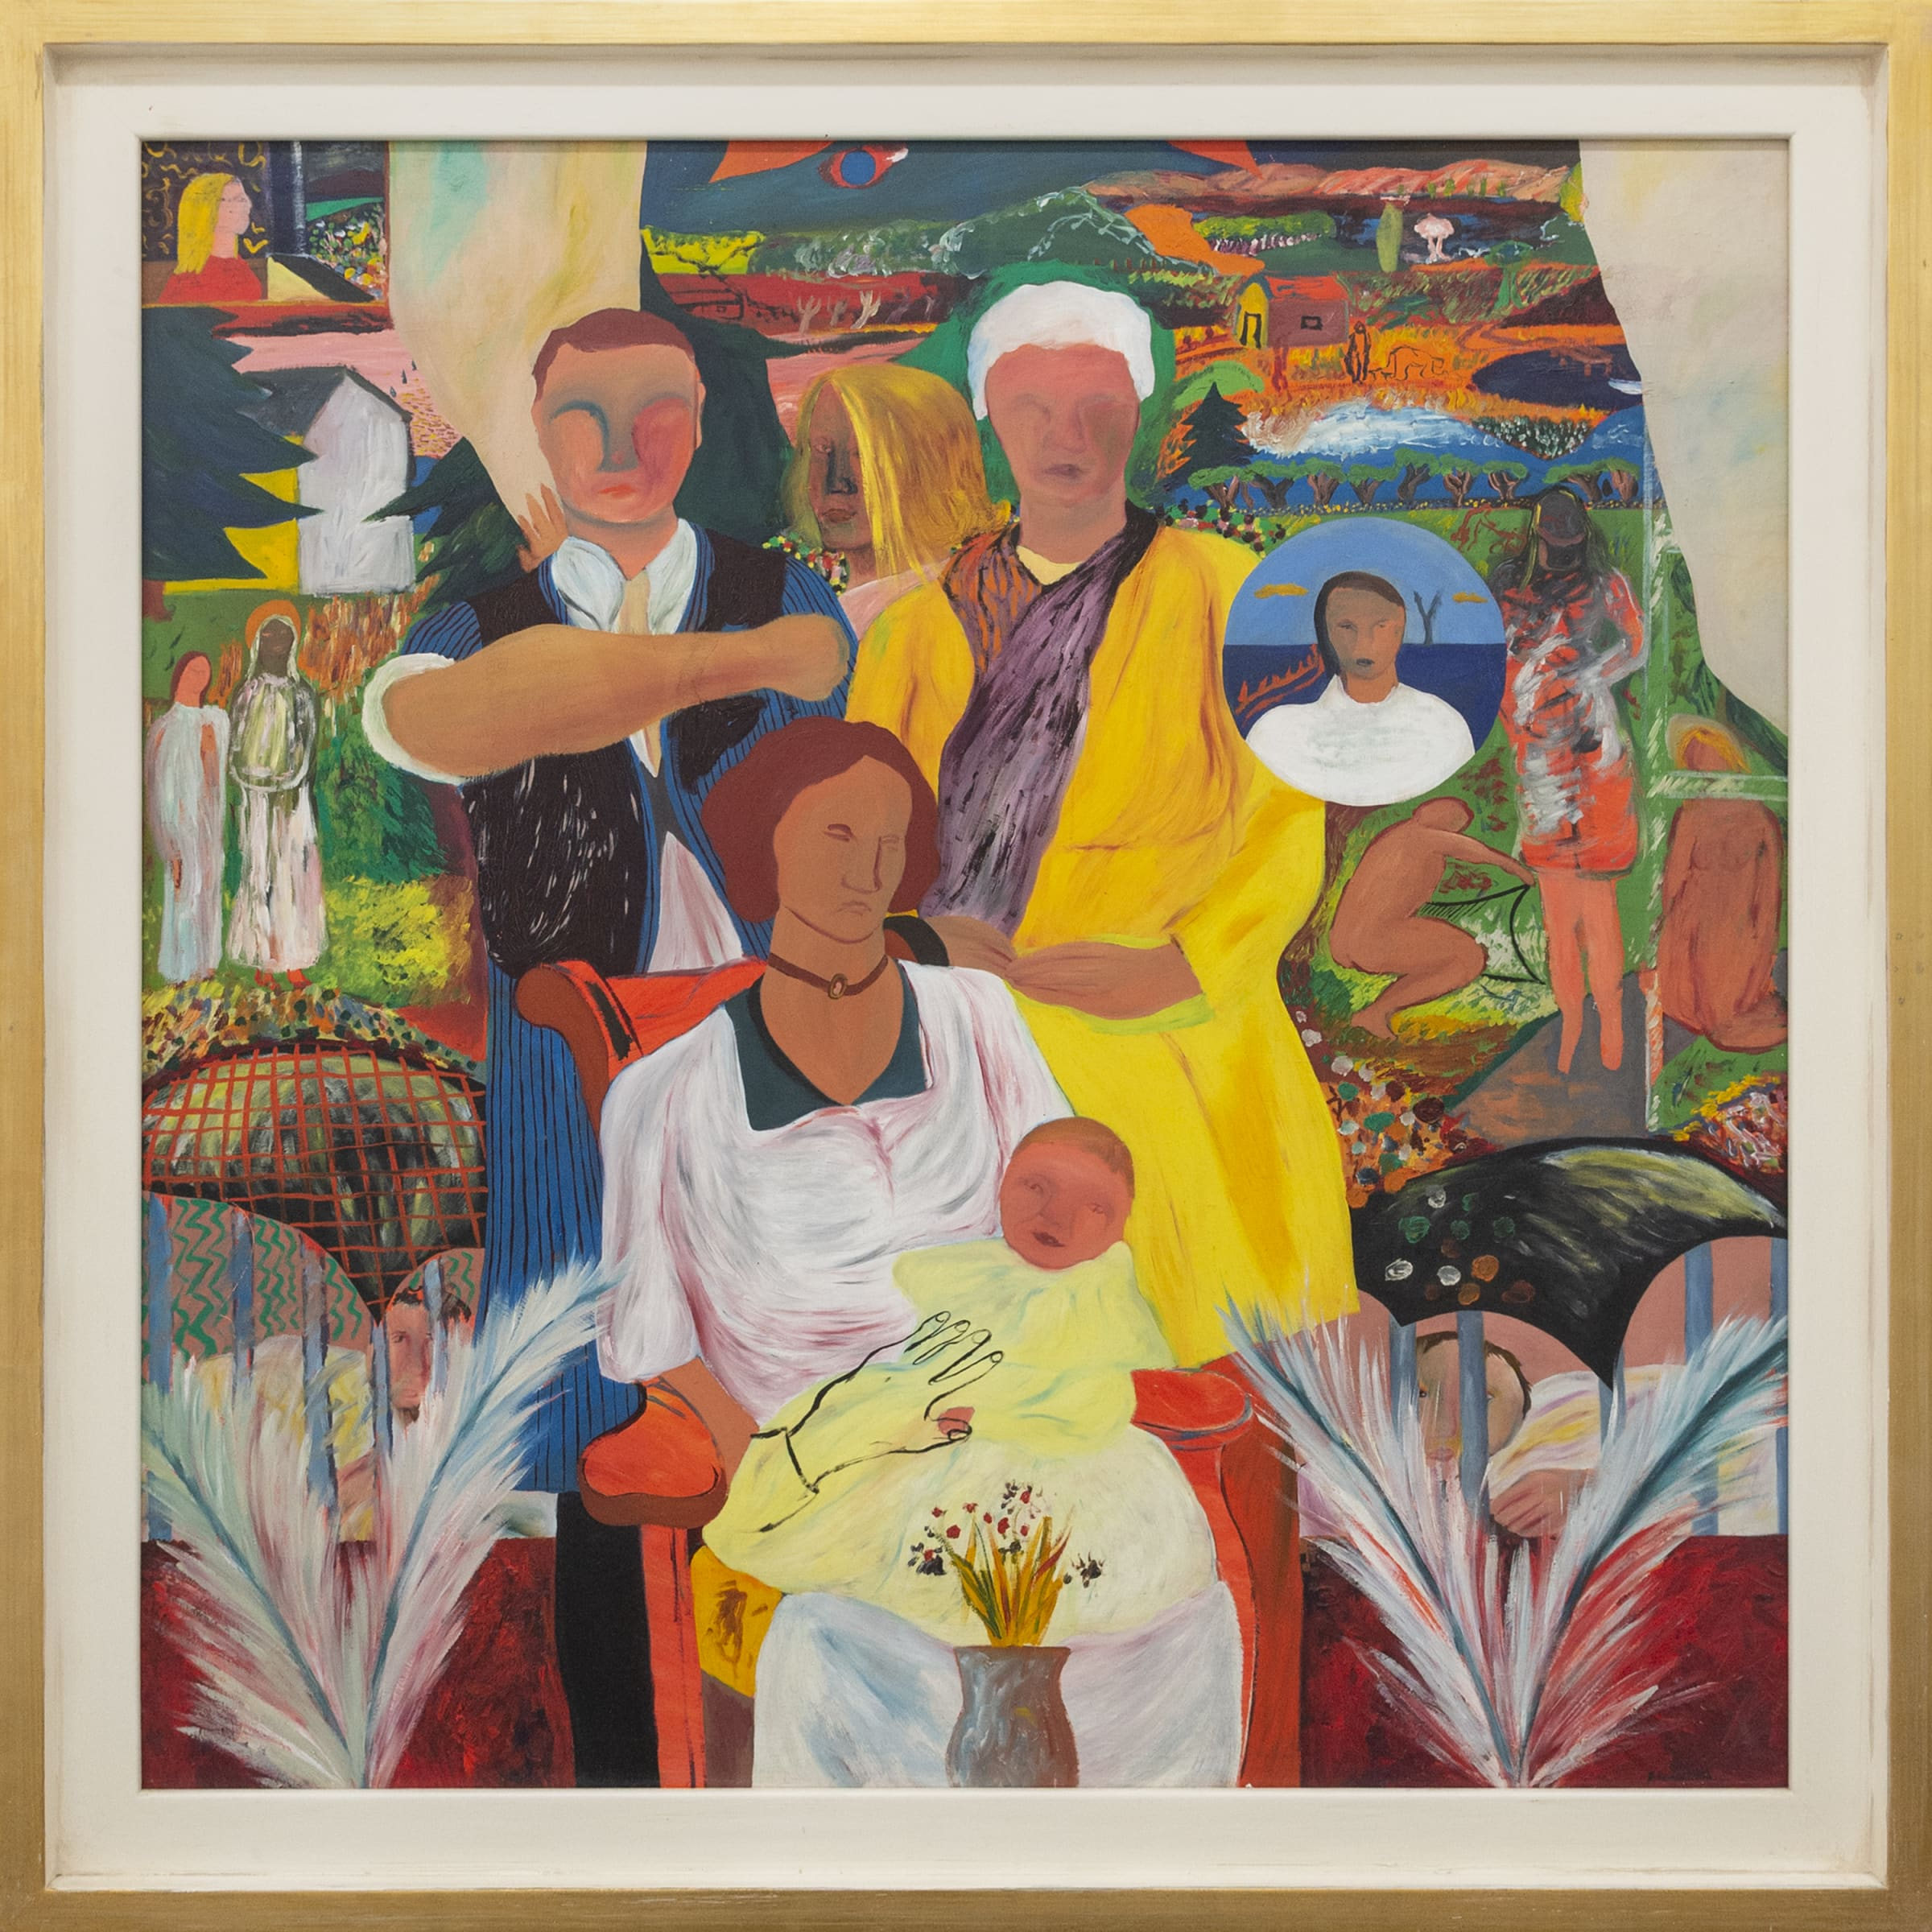 "<span class=""link fancybox-details-link""><a href=""/artists/76-jeffrey-harris/works/7690-jeffrey-harris-family-portrait-c.-1974/"">View Detail Page</a></span><div class=""artist""><strong>Jeffrey Harris</strong></div> <div class=""title""><em>Family Portrait</em>, c. 1974</div> <div class=""medium"">Oil on board</div> <div class=""dimensions"">139.5 x 139.5 cm<br /> 54 7/8 x 54 7/8 in</div><div class=""copyright_line"">Copyright The Artist</div>"